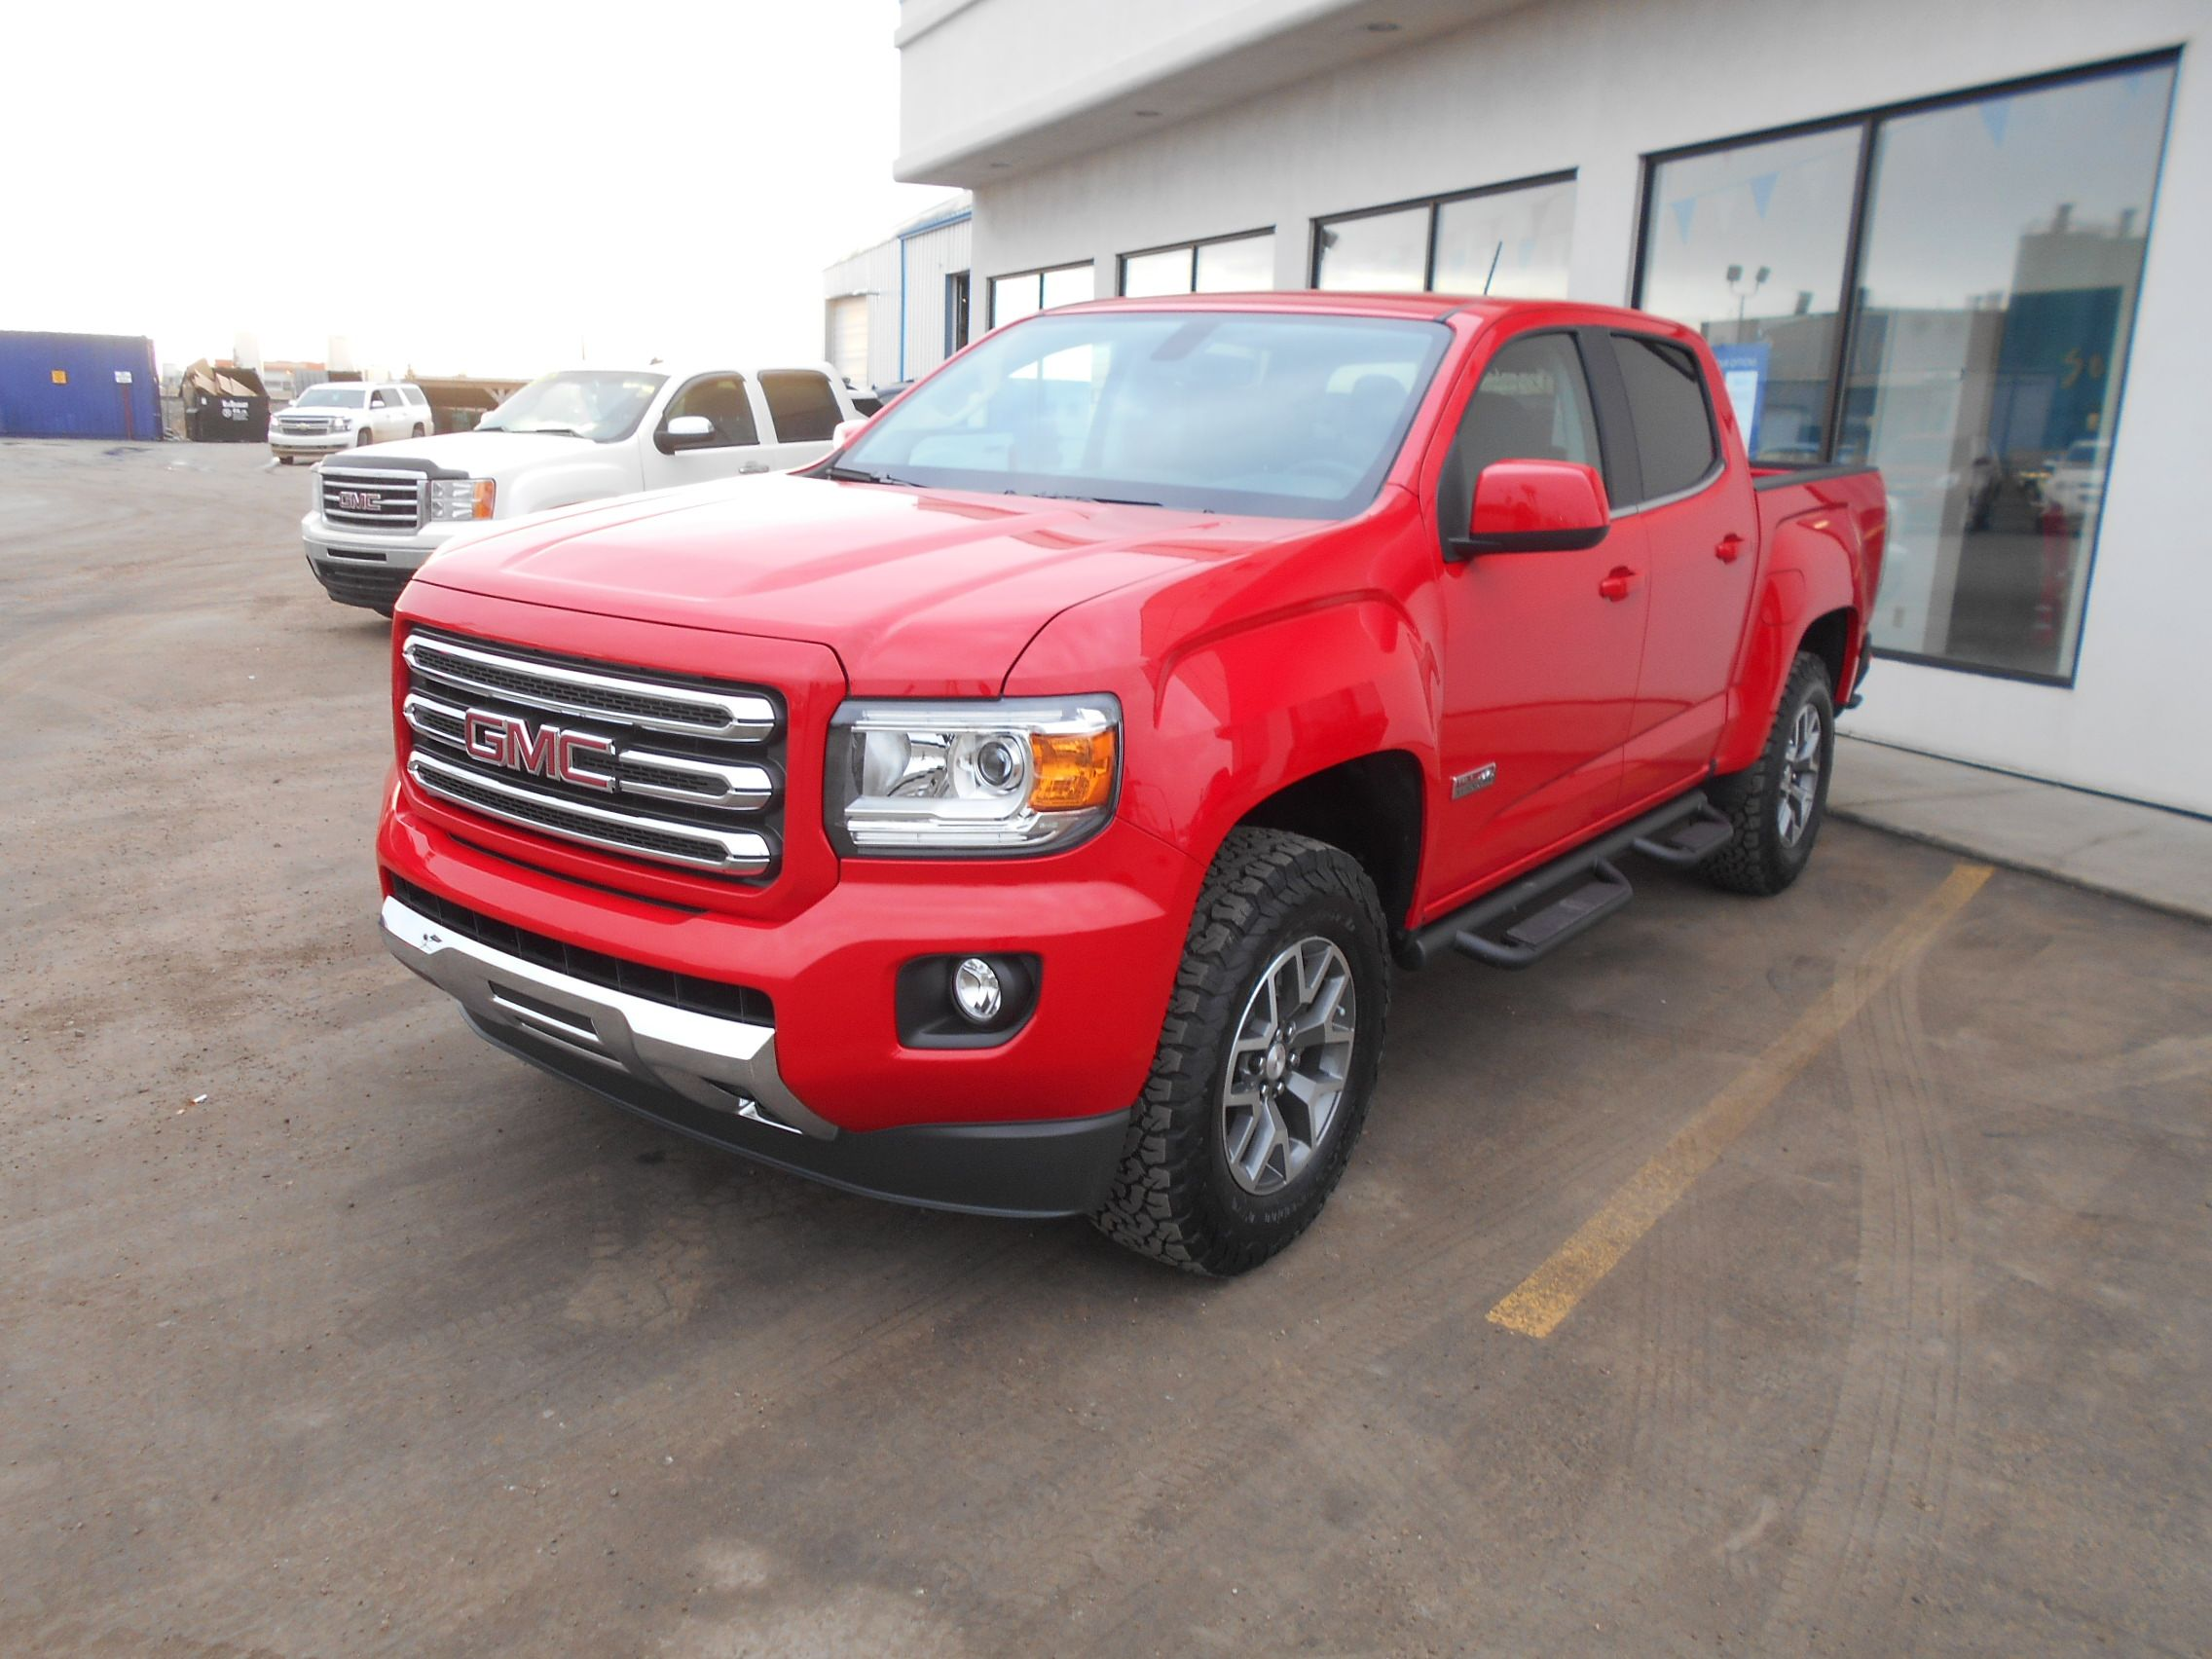 2017 Gmc Canyon Schwab Custom Truck Comes Equipped With Leveling Kit Upgraded Tires Gm Off Road Running Boards Schwabchevrolet